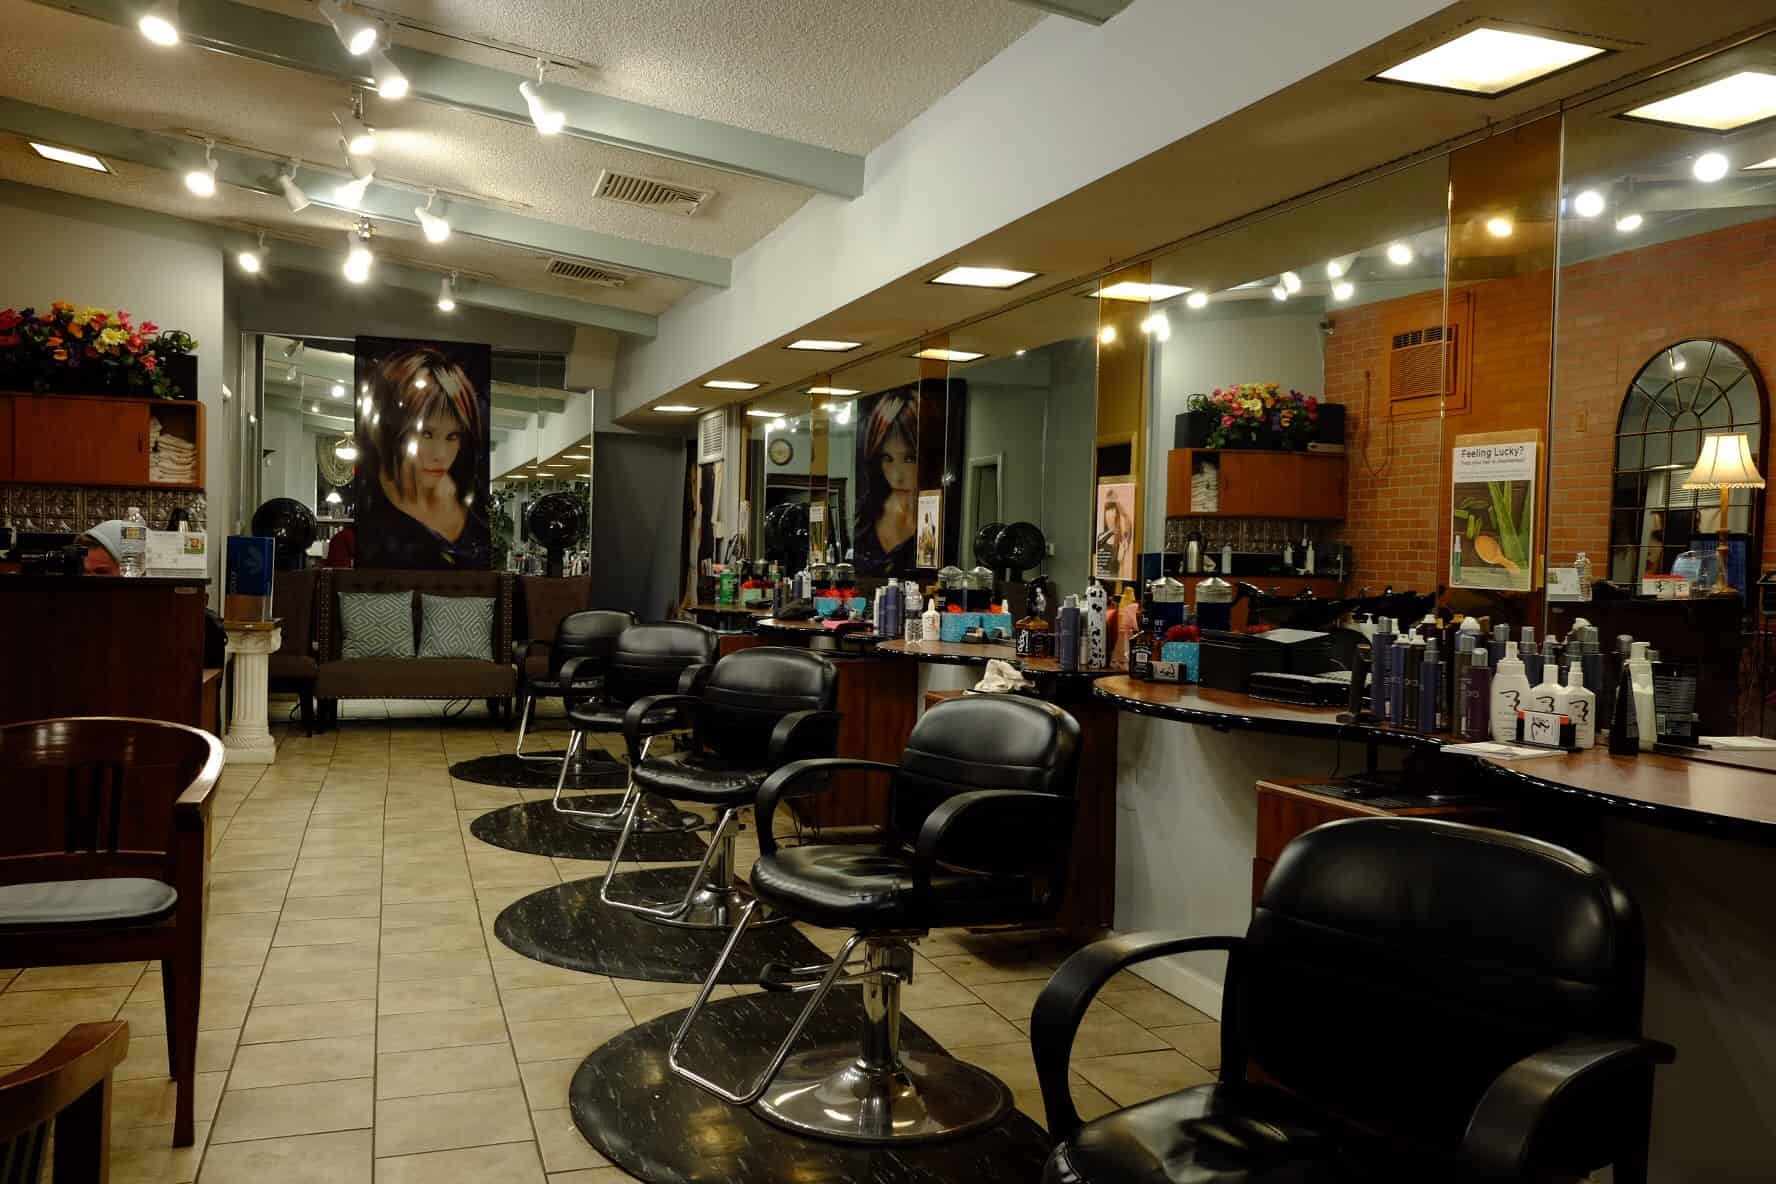 interior of hair salon in south philadelphia pa